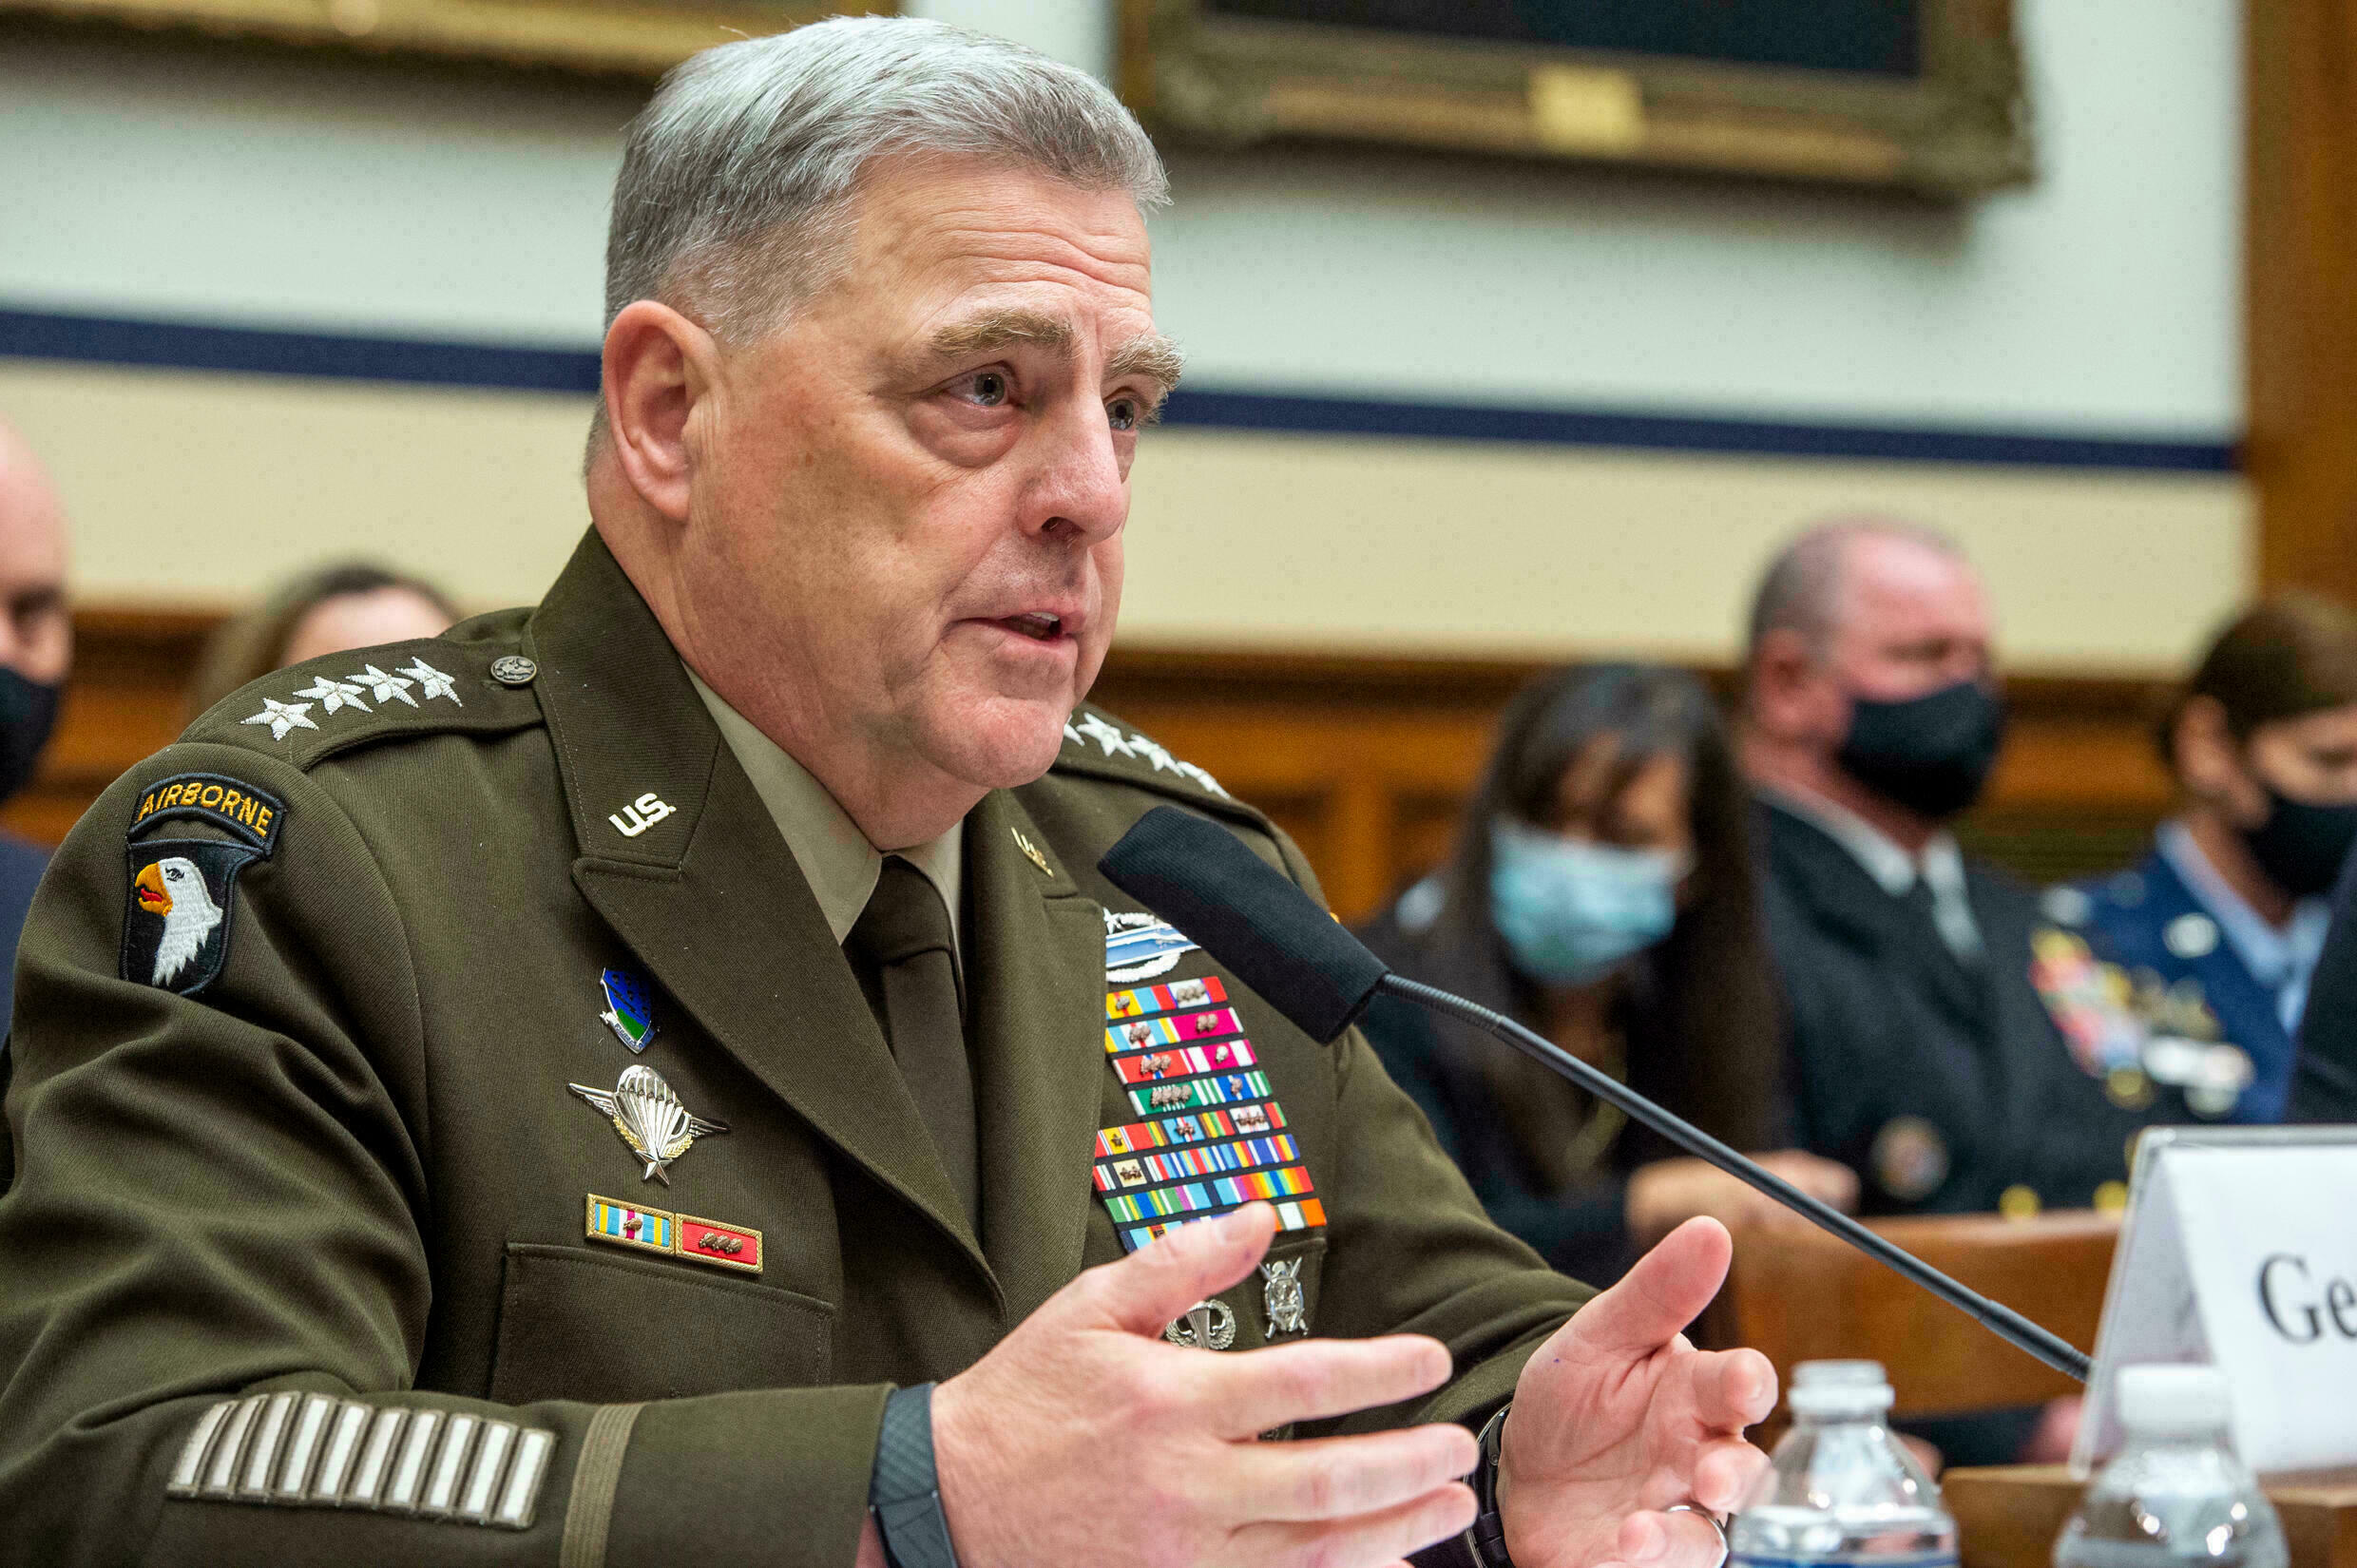 afghanistan retreat General Mark Milley, chairman of the US Joint Chiefs of Staff, conceded in a stark admission that the US 'lost' the war in Afghanistan POOL GETTY IMAGES AFP